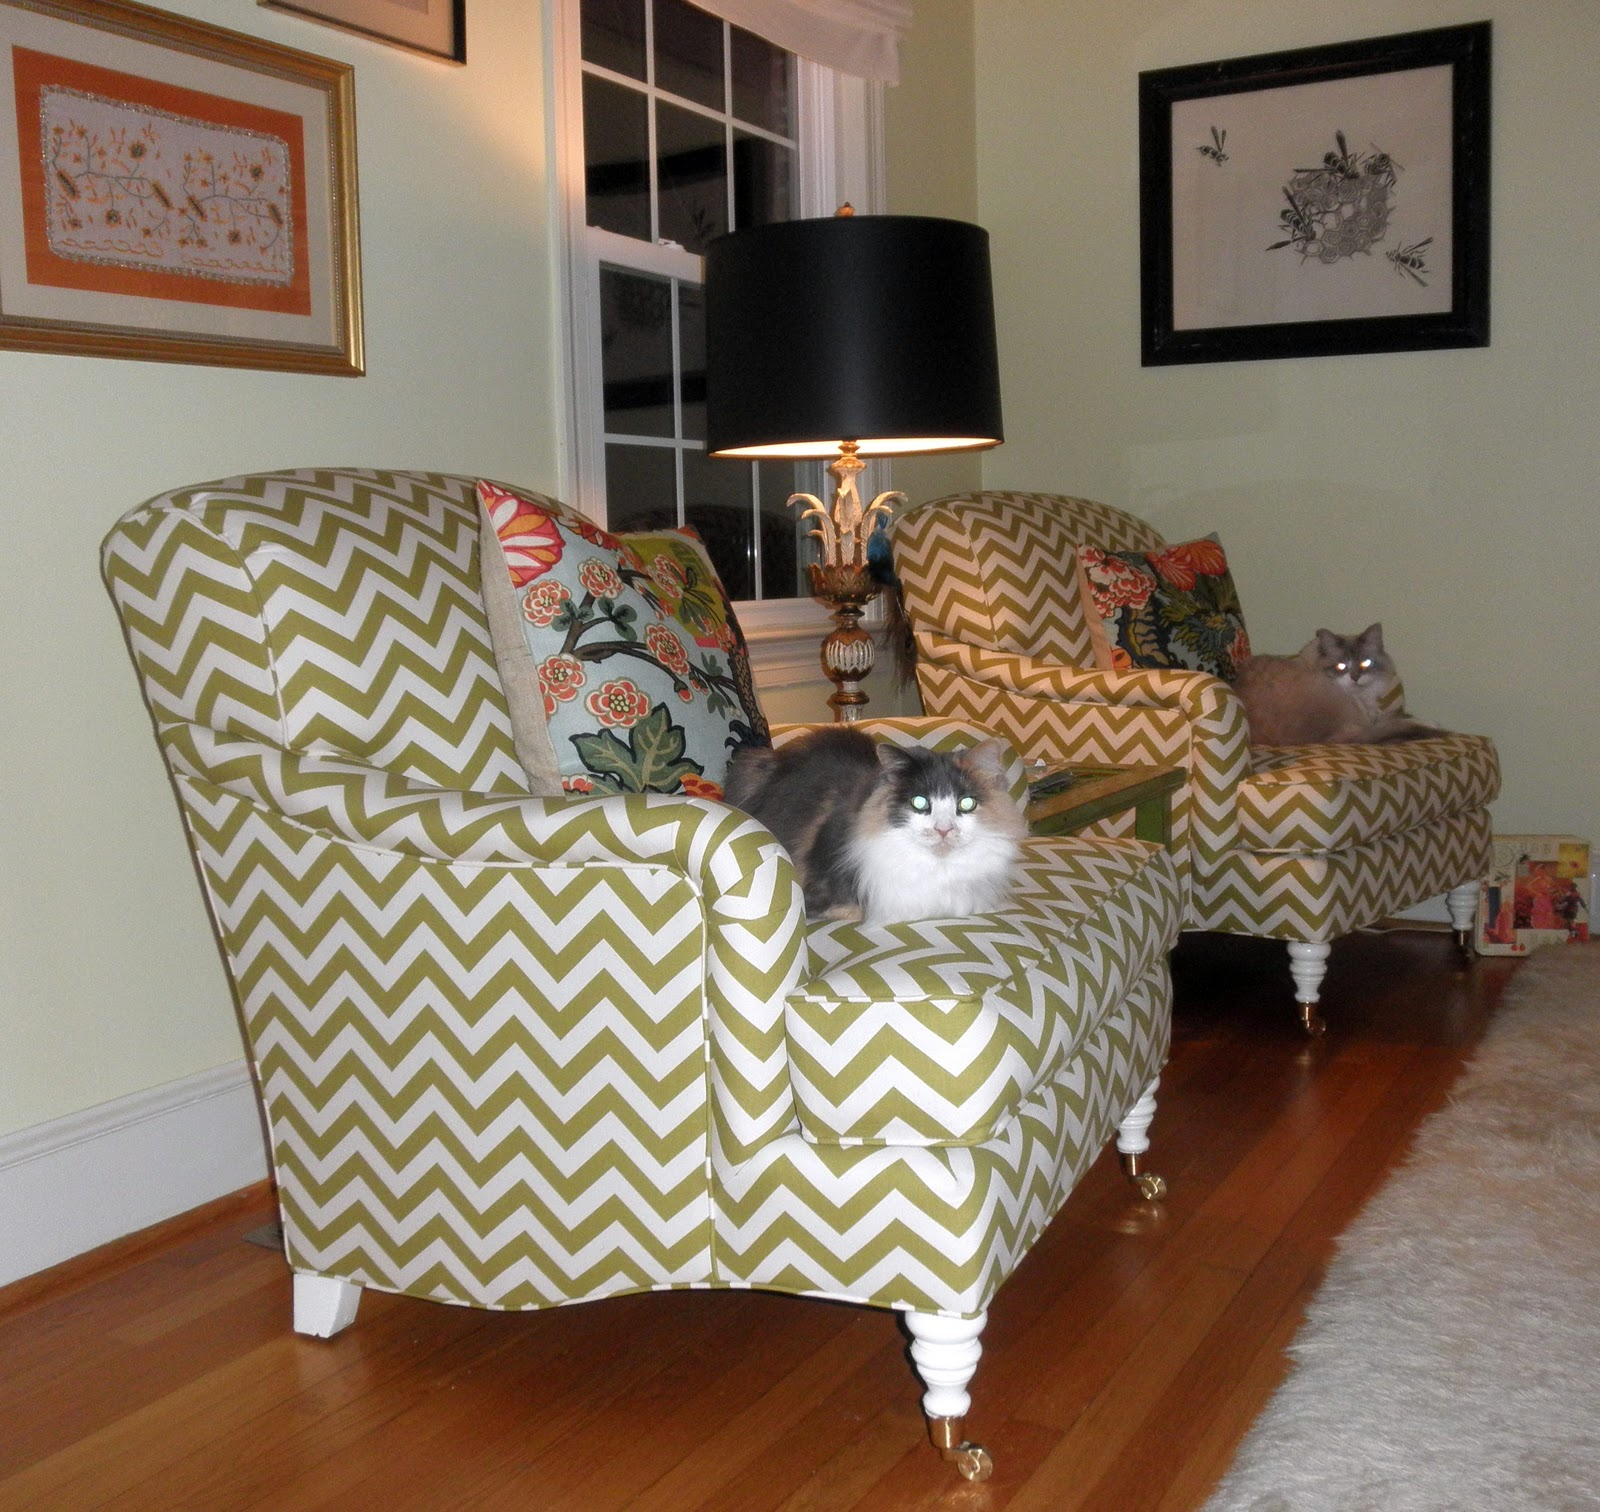 best sofa material for cat owners small chesterfield danielle sigwalt interiors already covered upholstery